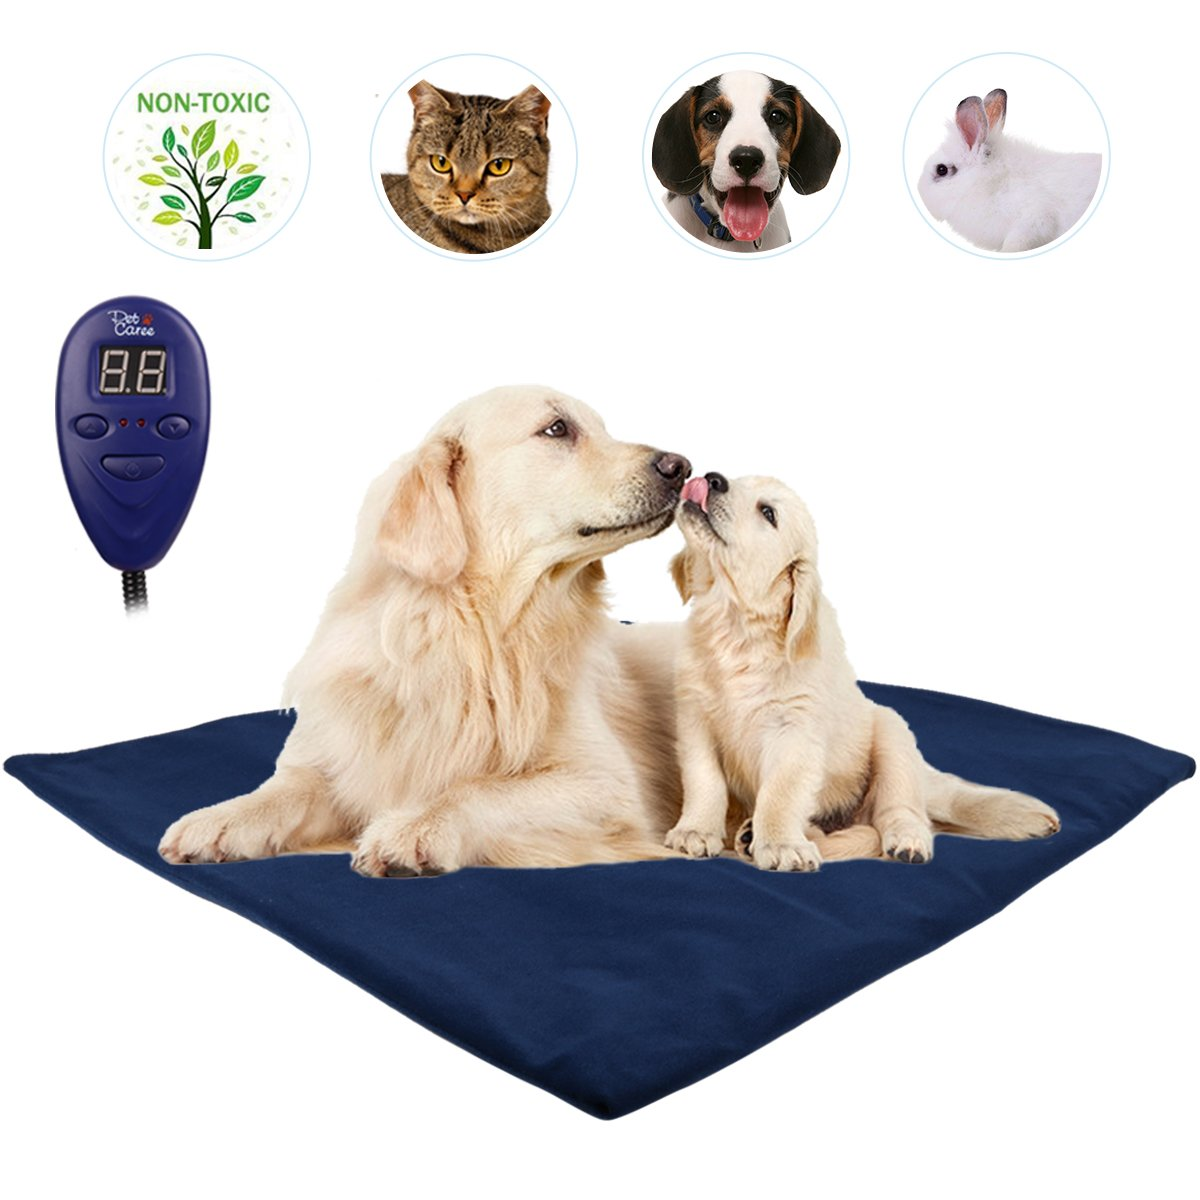 IB SOUND Heating Pads for Pets,bluee(ZM9B)